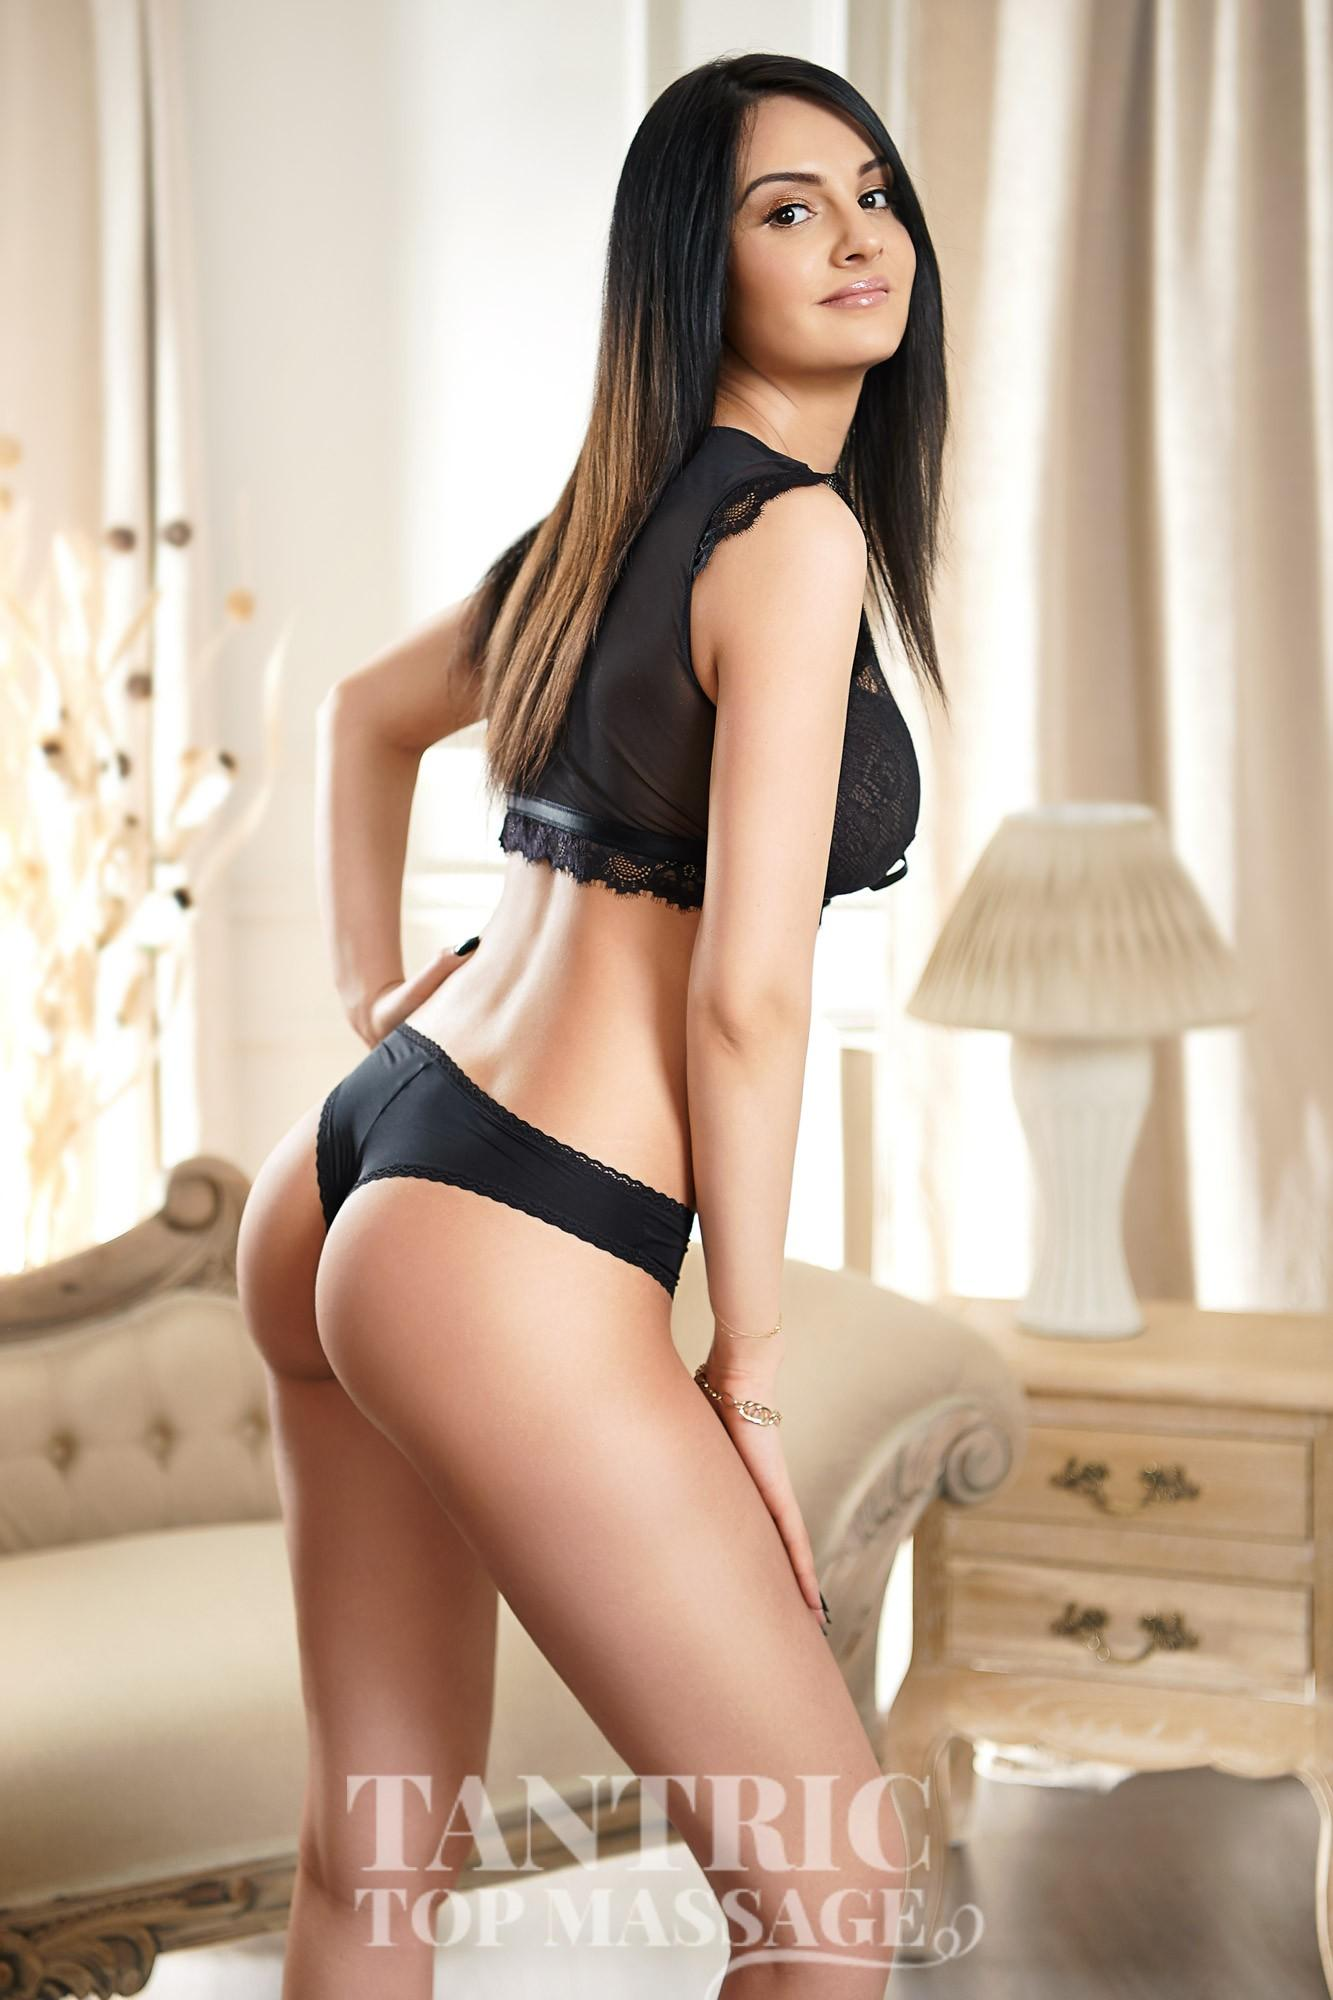 Marina from Tantric Top Massage